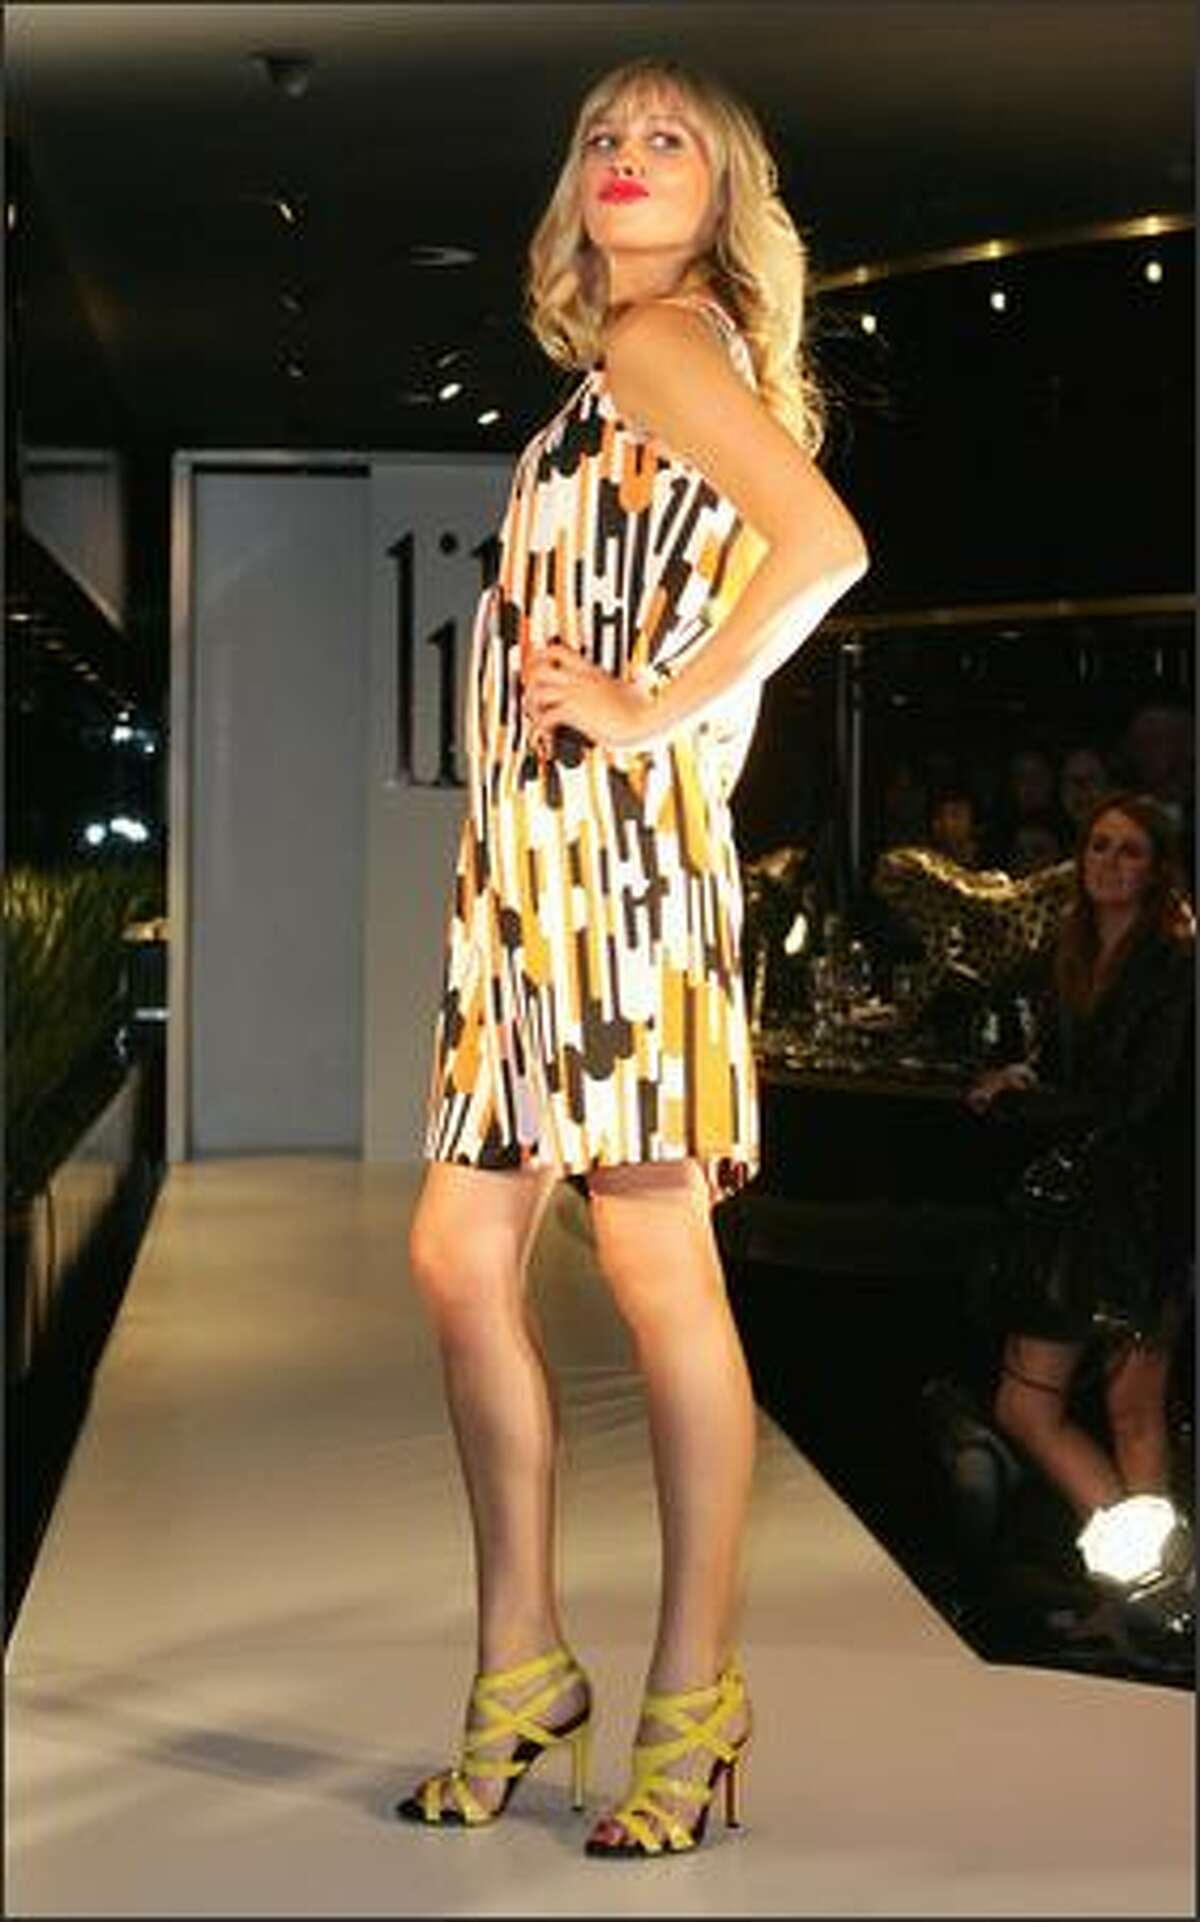 A model showcases an outfit by designer Lili during the official launch party for Lili Summer's new collection